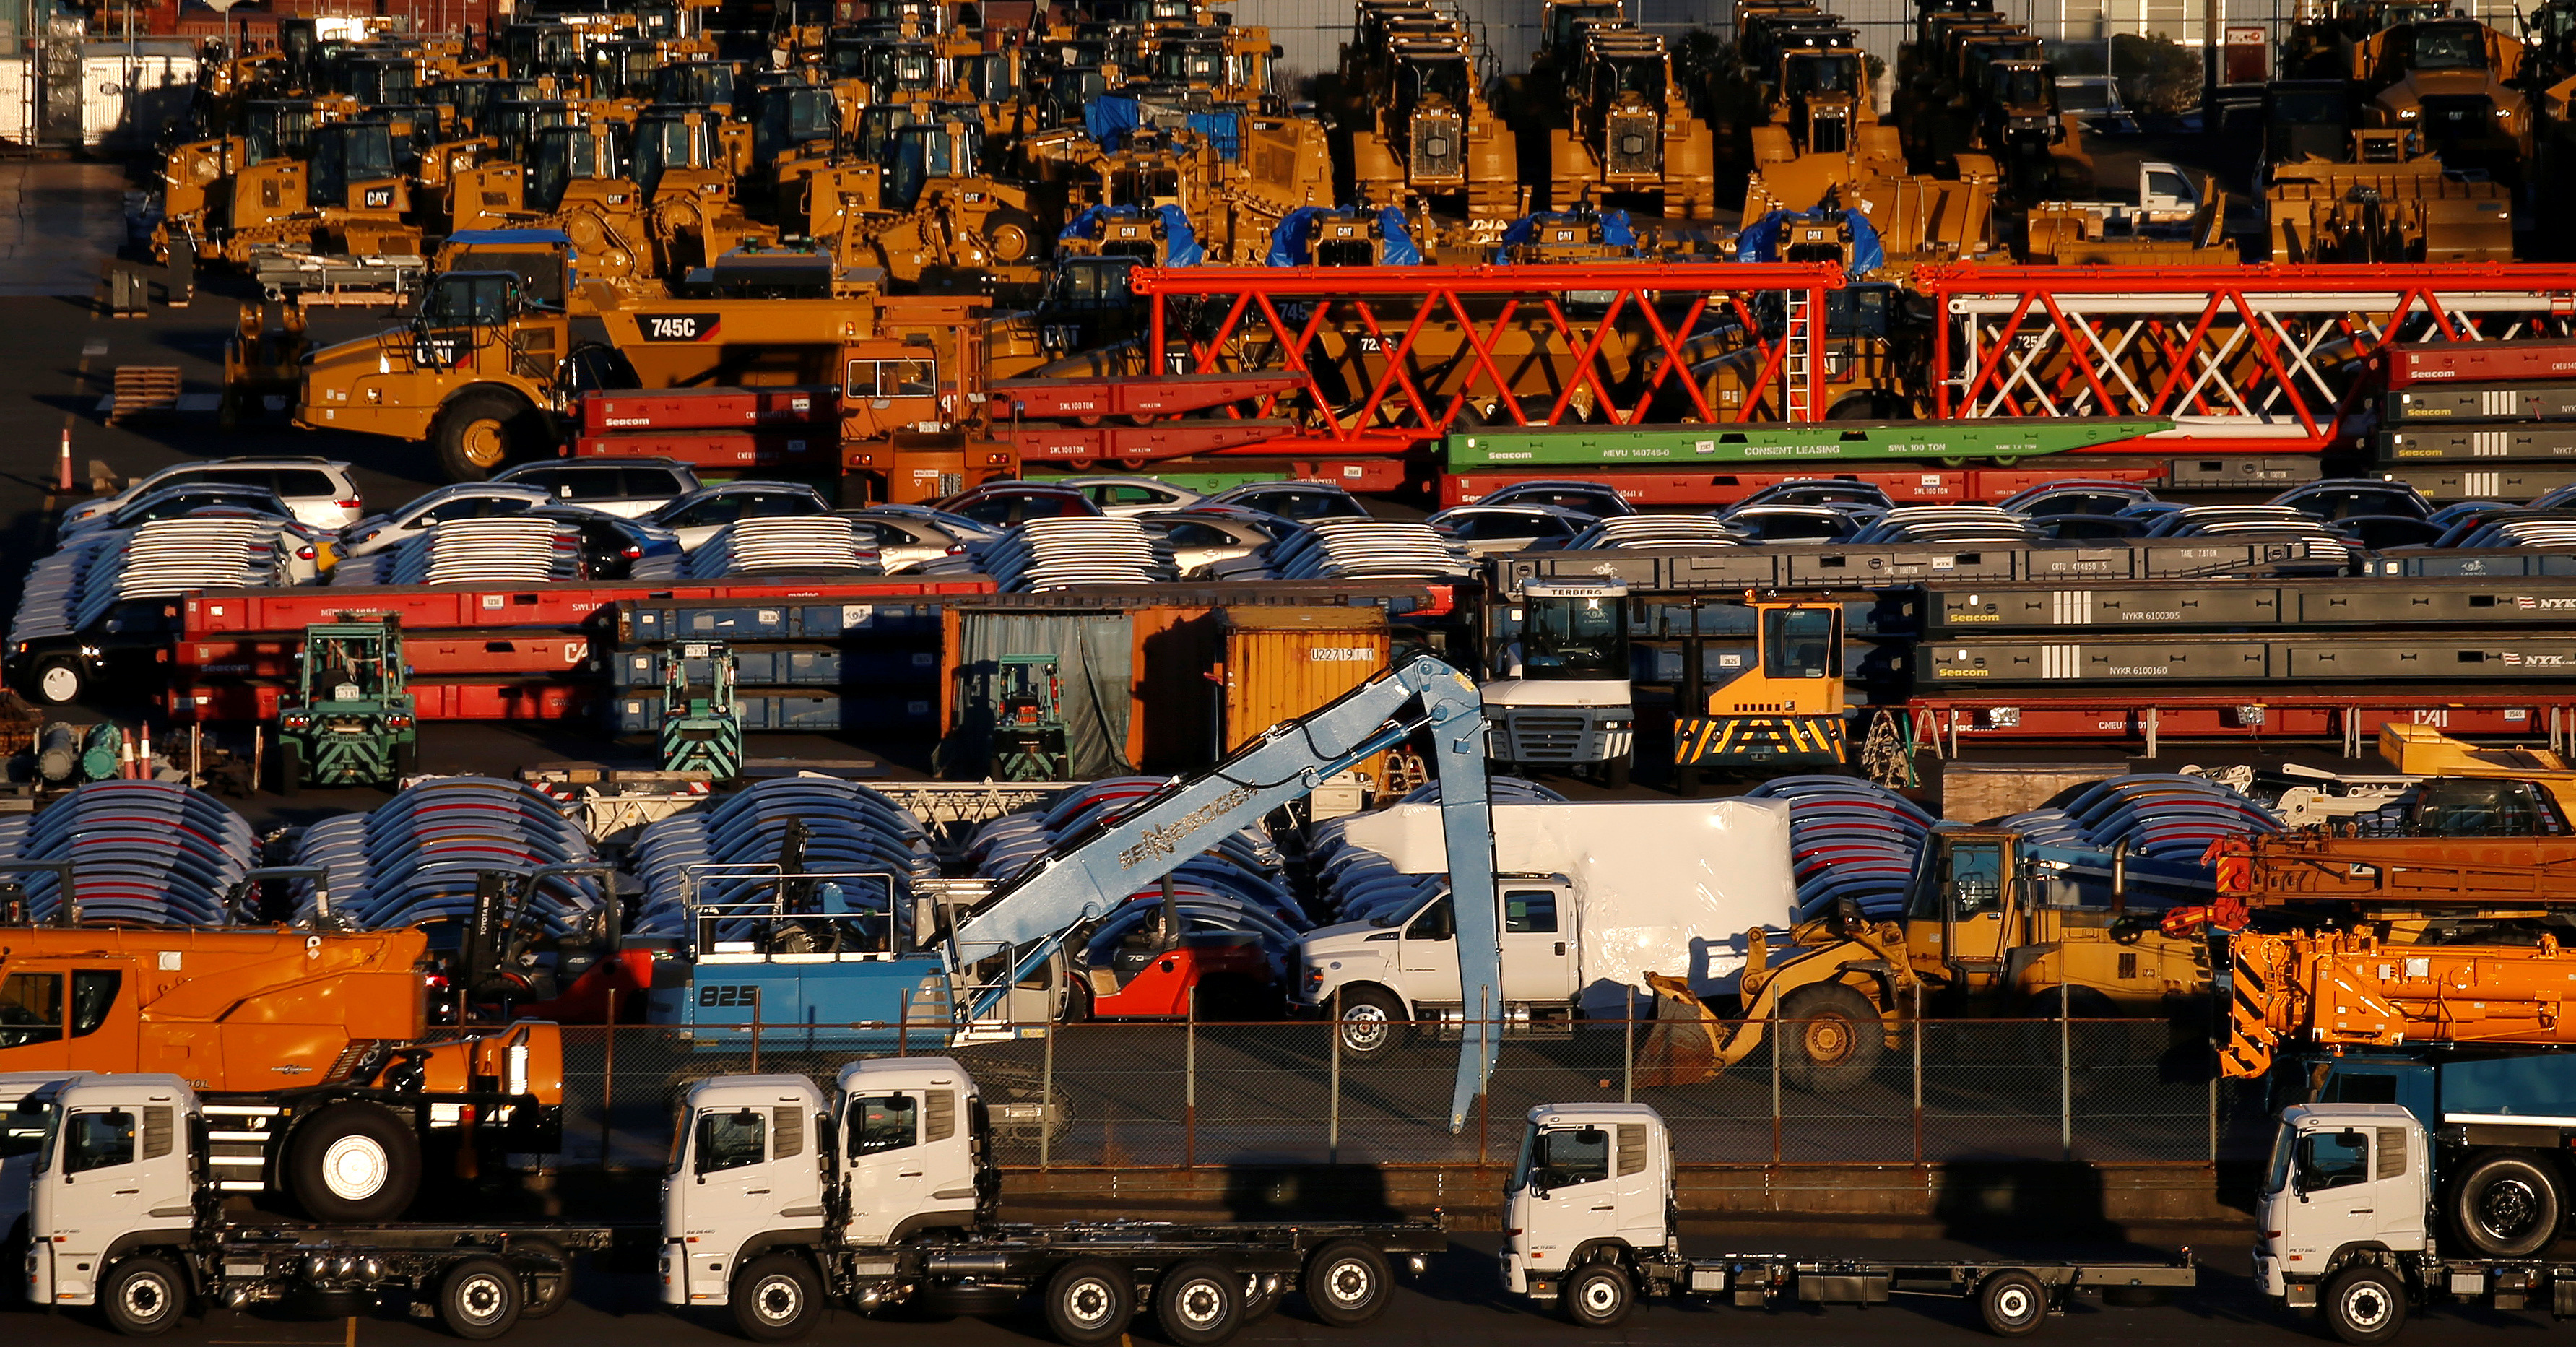 Japan's sinking exports raise risk of prolonged downturn